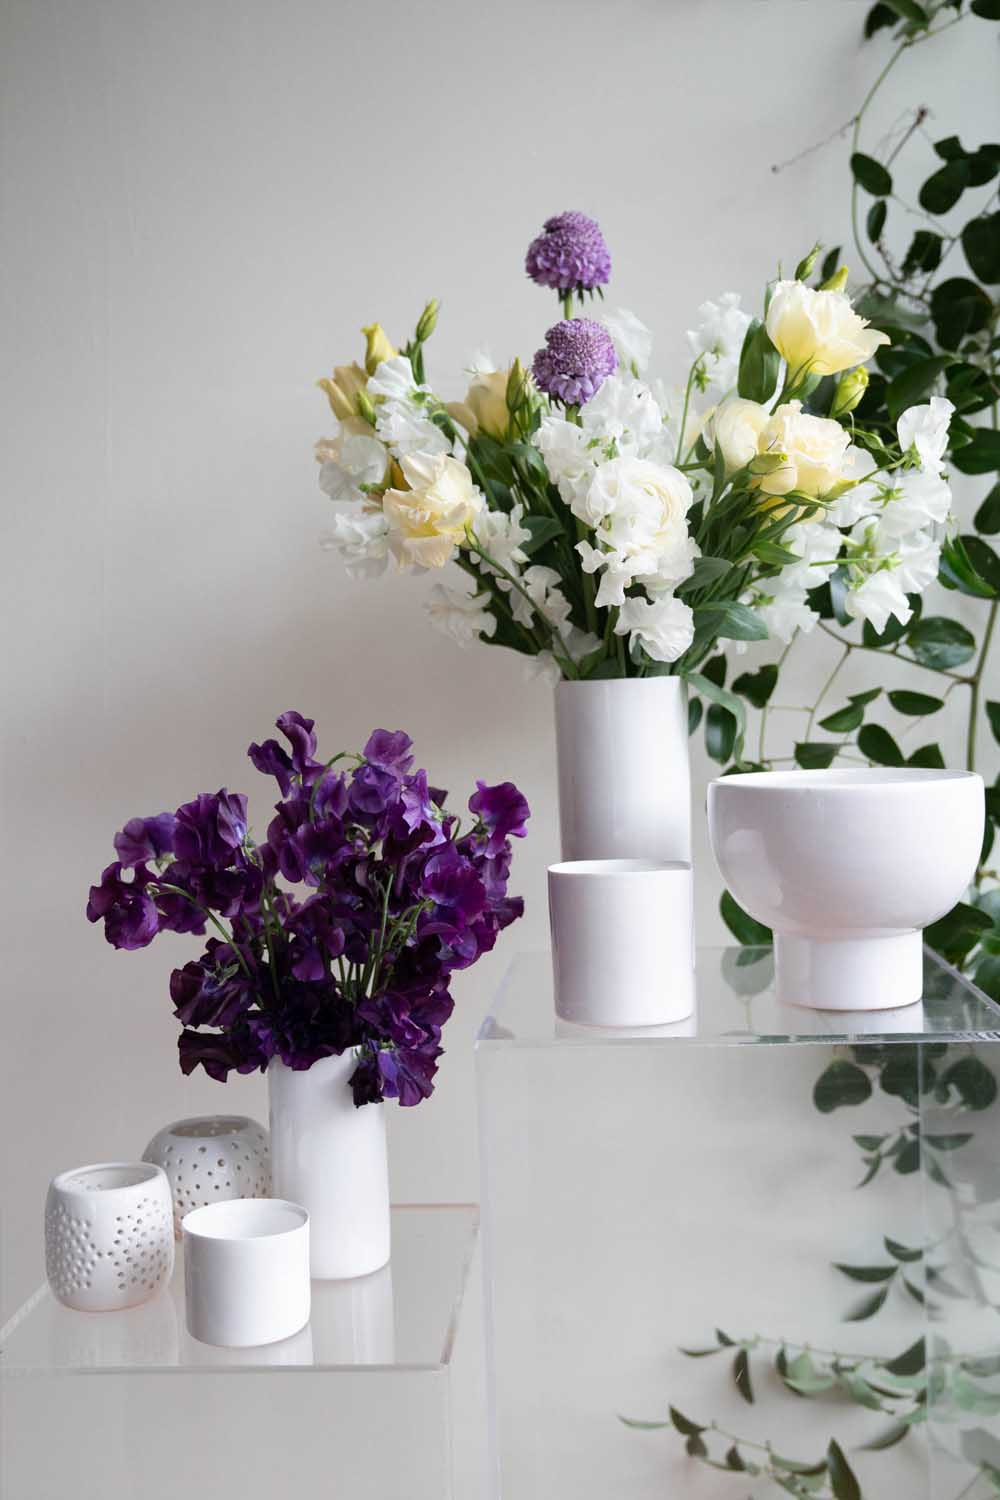 Glossy White Vases & Candles